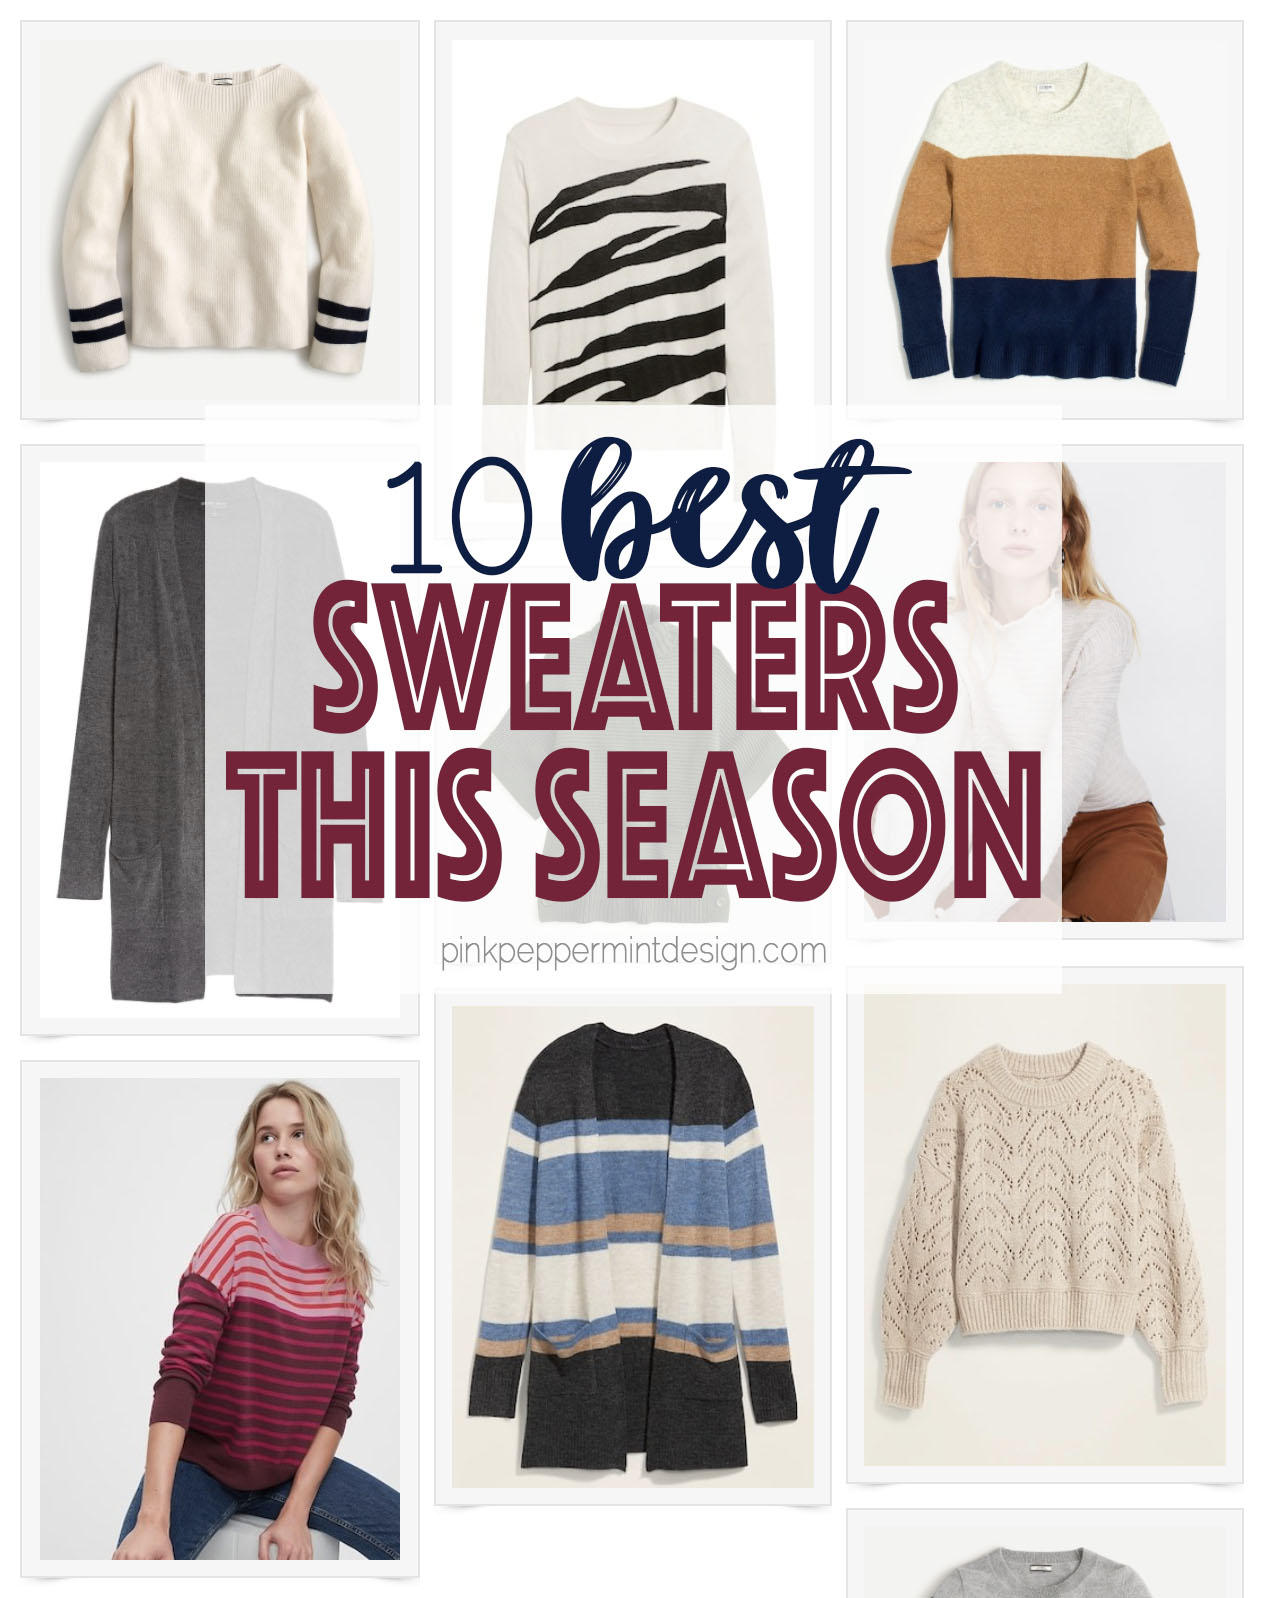 10 best sweaters this season